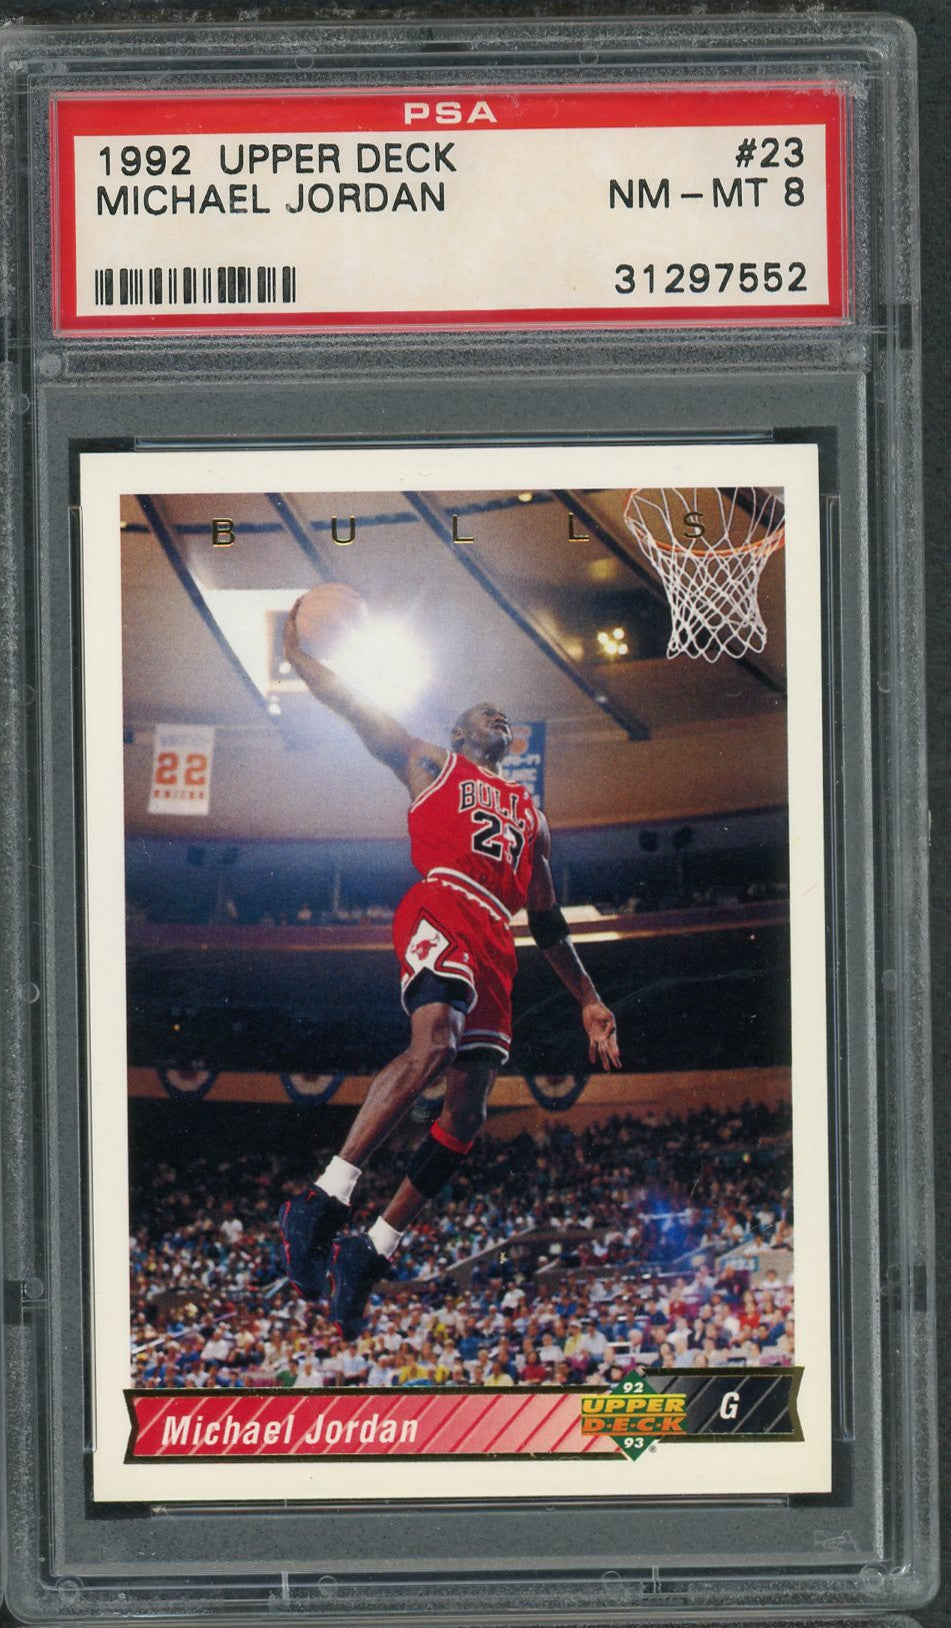 Michael Jordan Chicago Bulls 1992 Upper Deck Basketball Card #23 Graded PSA 8-Powers Sports Memorabilia